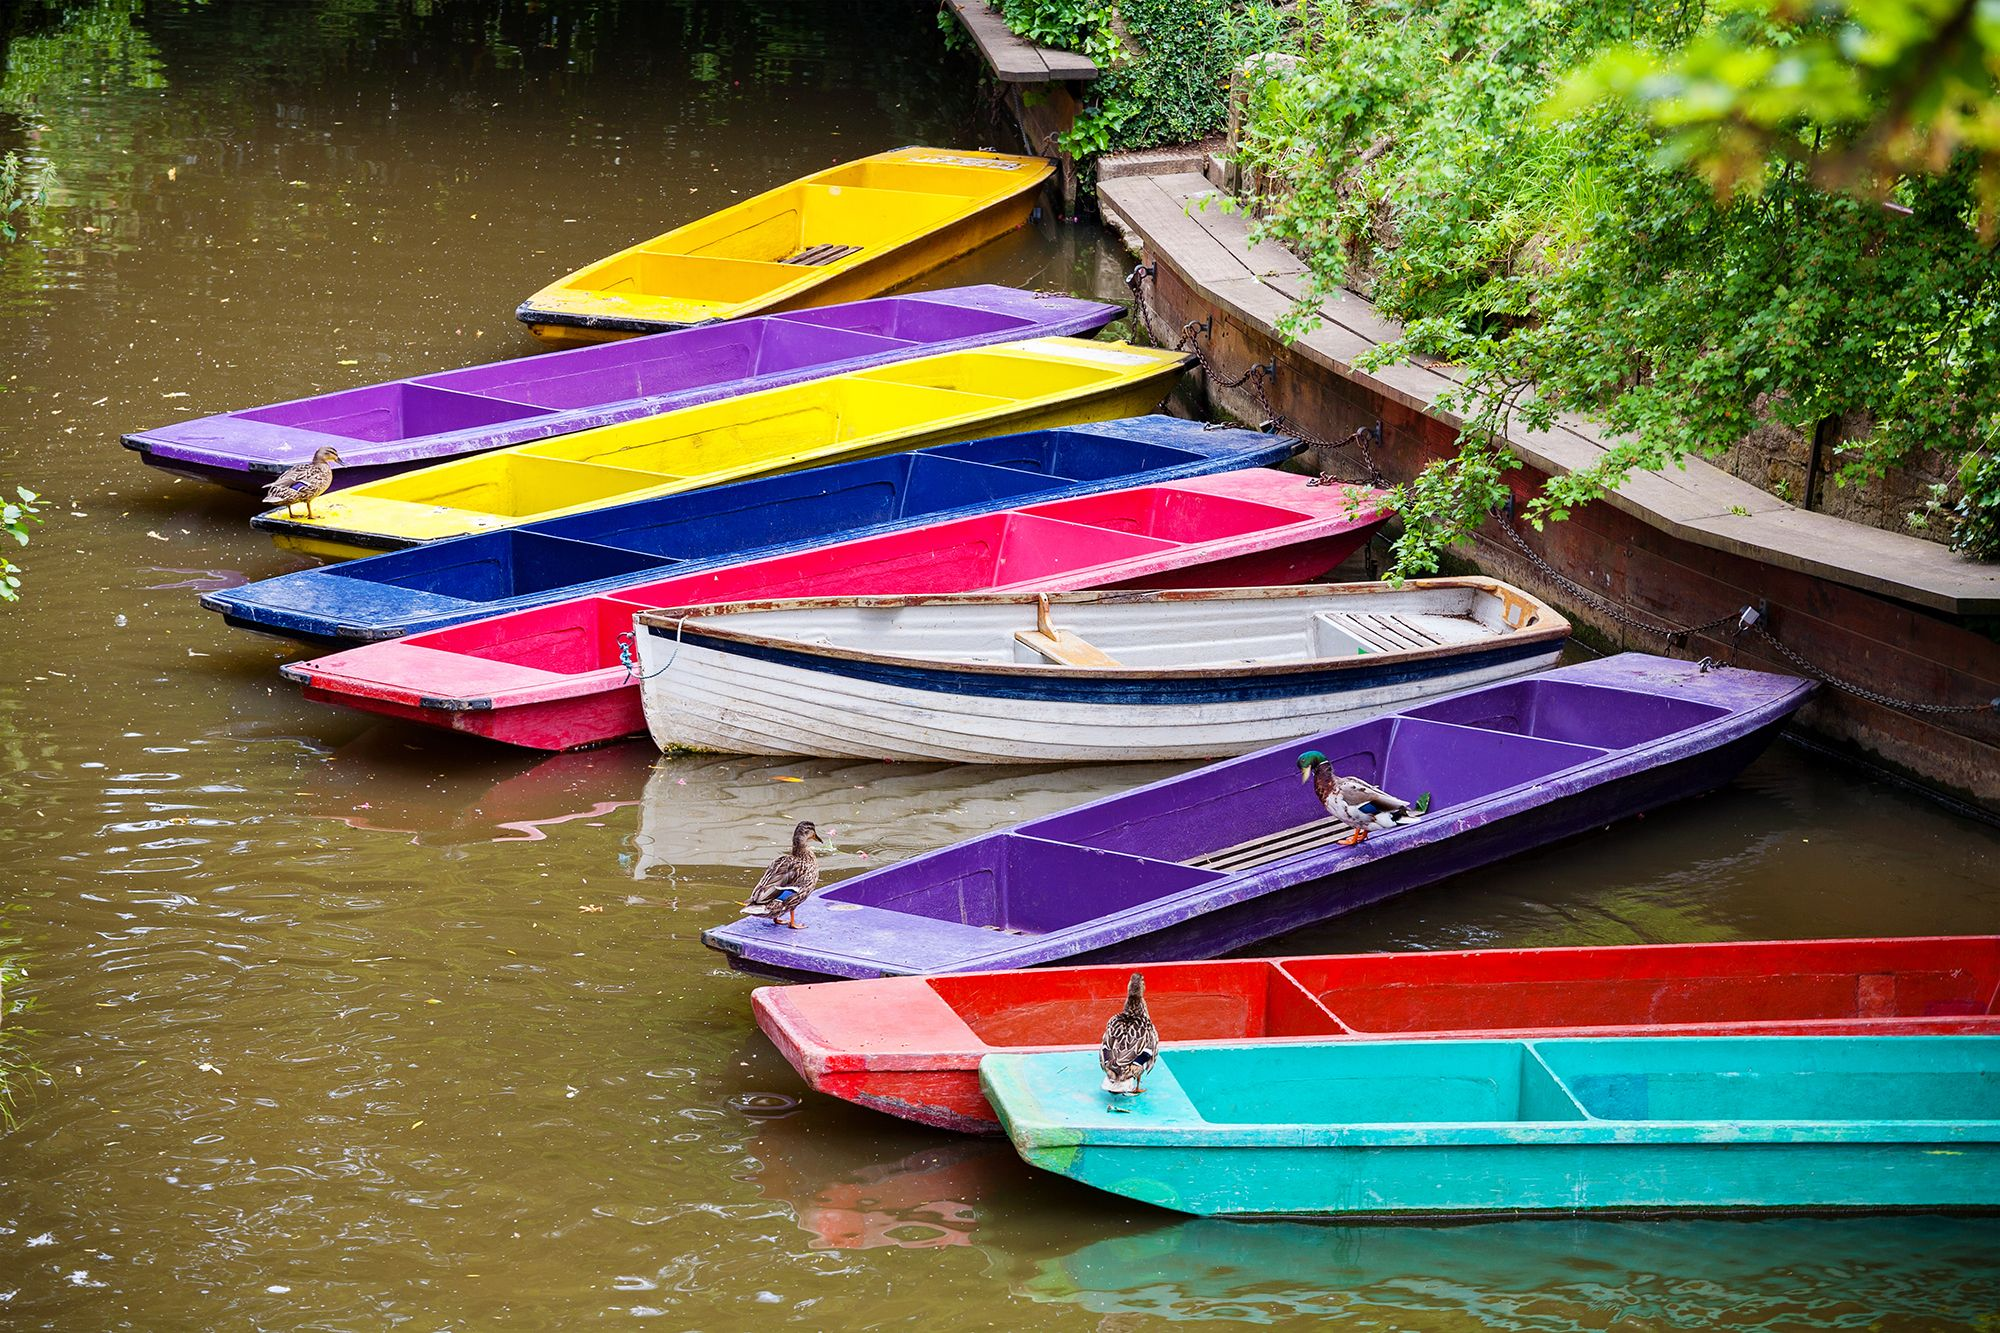 Colourful wooden boats in Oxford